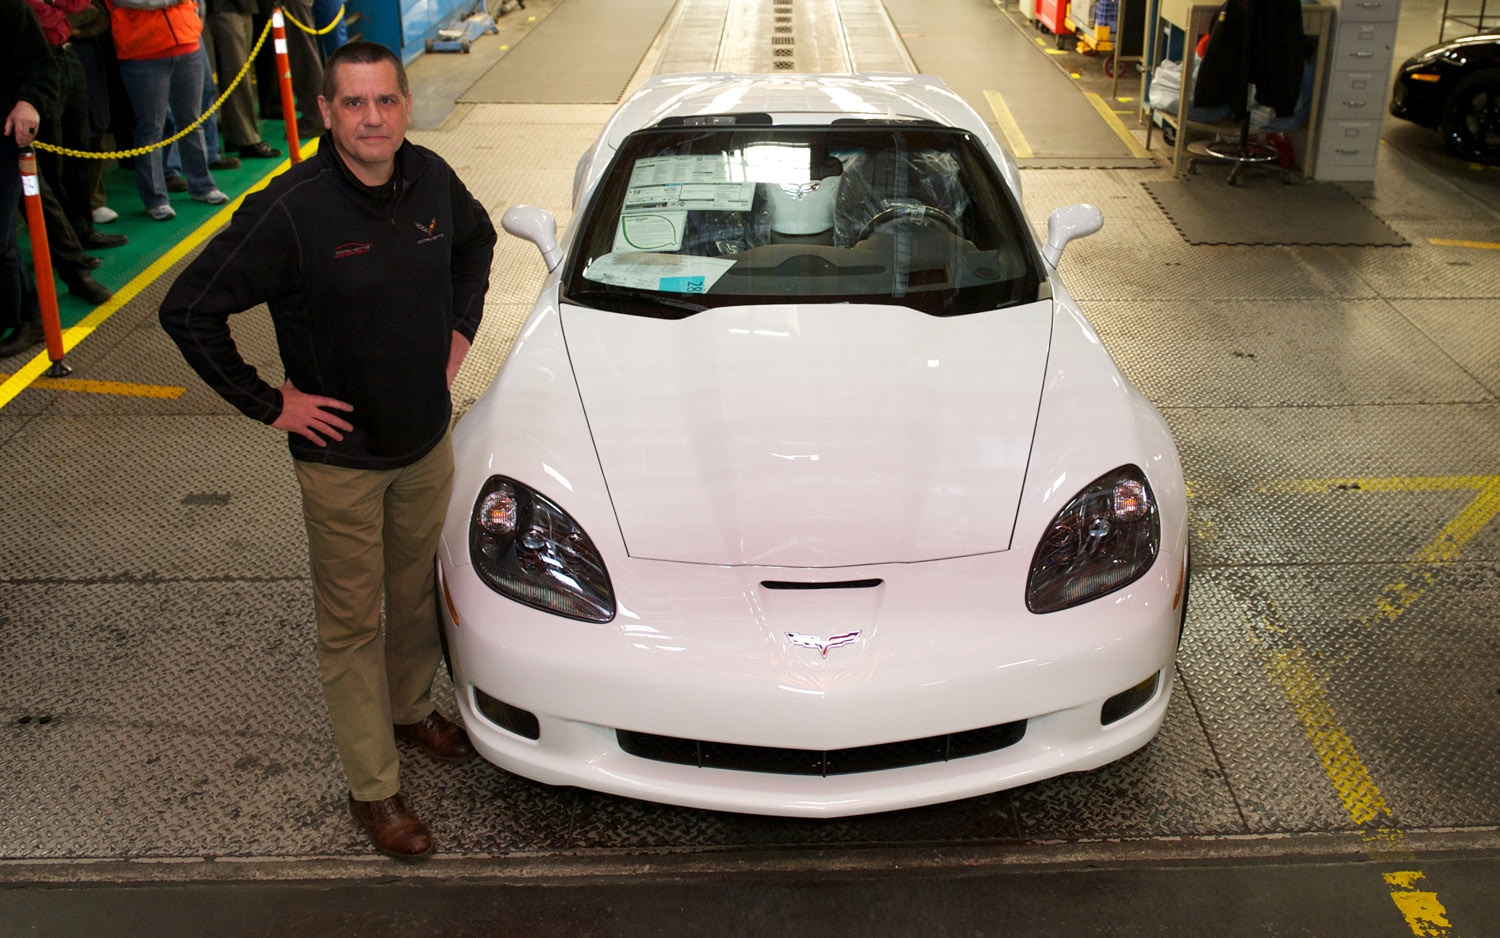 2013 Chevrolet Corvette Last C6 With Plant Manager Front View1